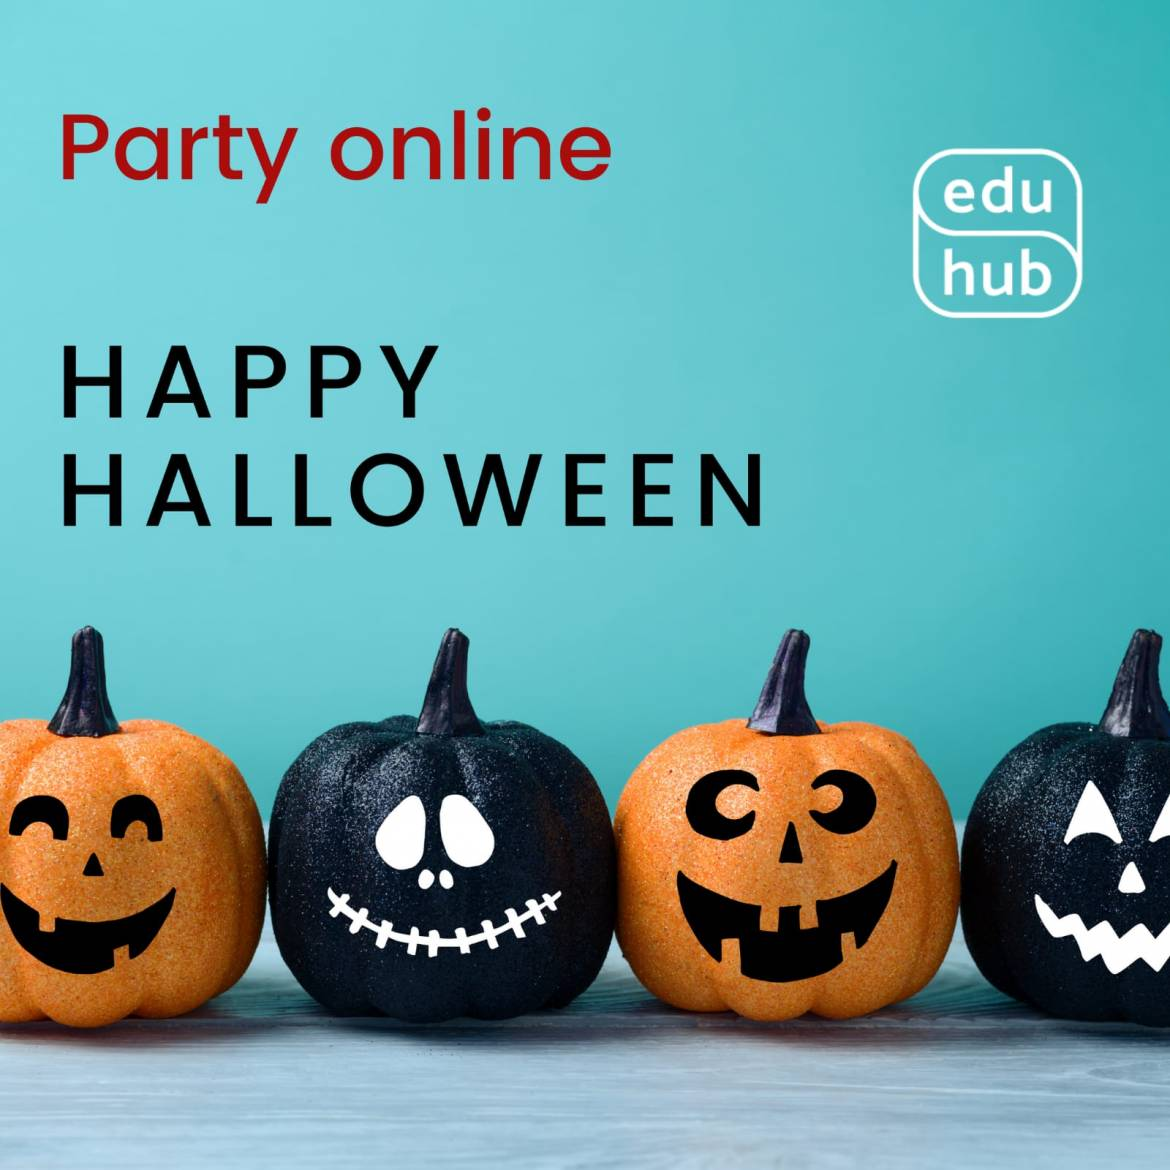 Happy Halloween – Online Party